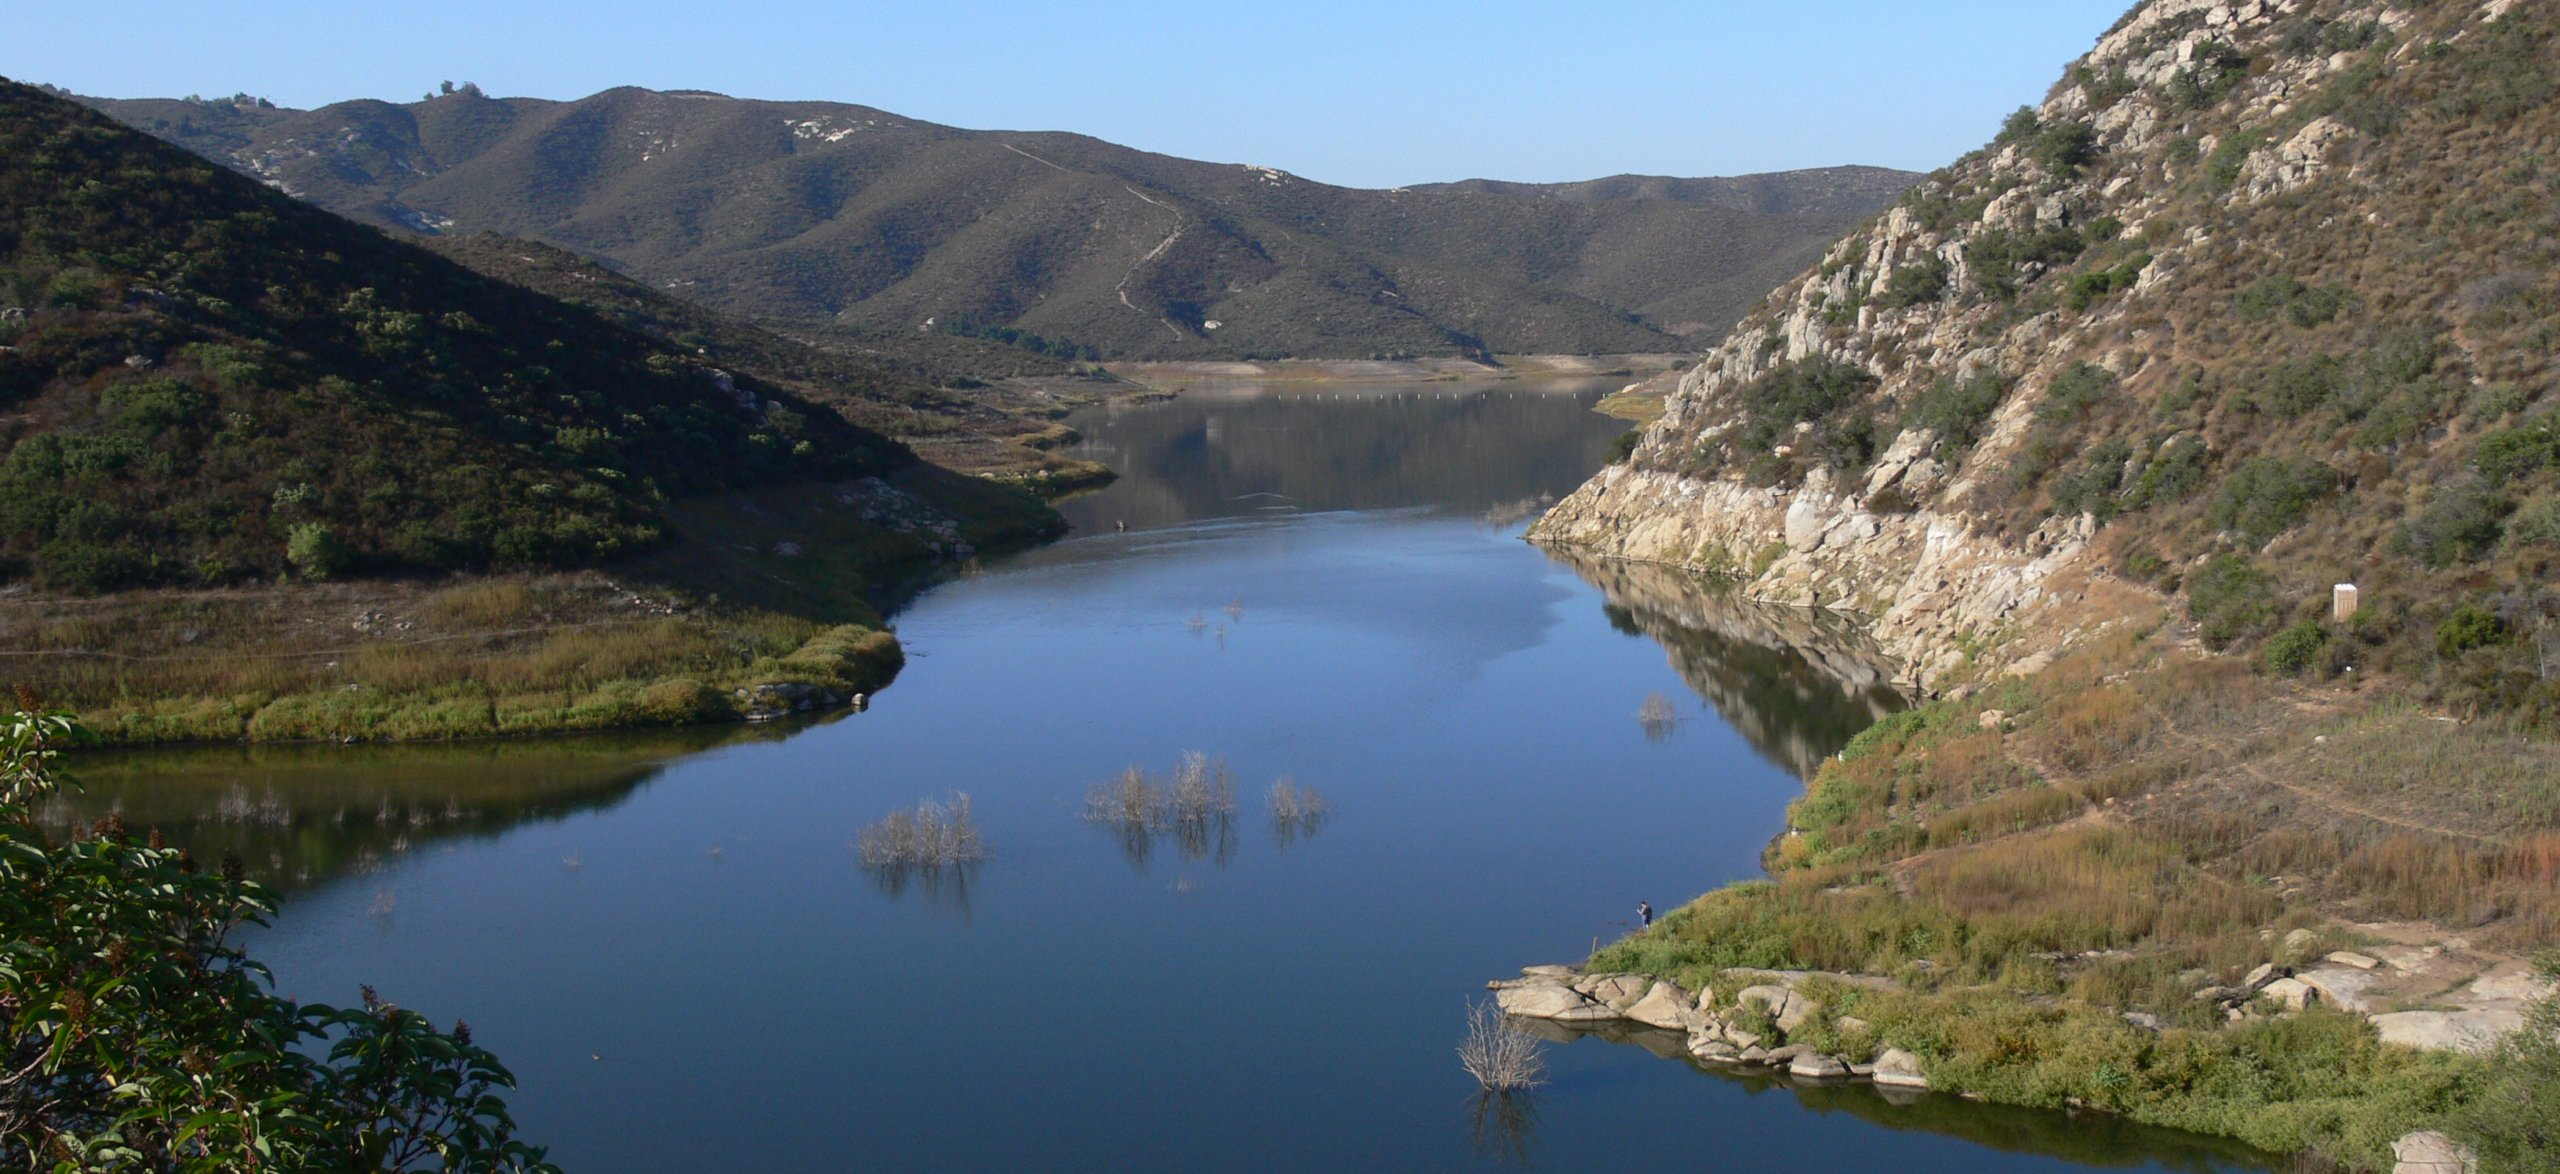 Sweetwater Authority owns and maintains two popular recreation spots in San Diego County, Sweetwater Reservoir (above) near Spring Valley, California, and Loveland Reservoir, further east near Alpine, California. Photo: Sweetwater Authority